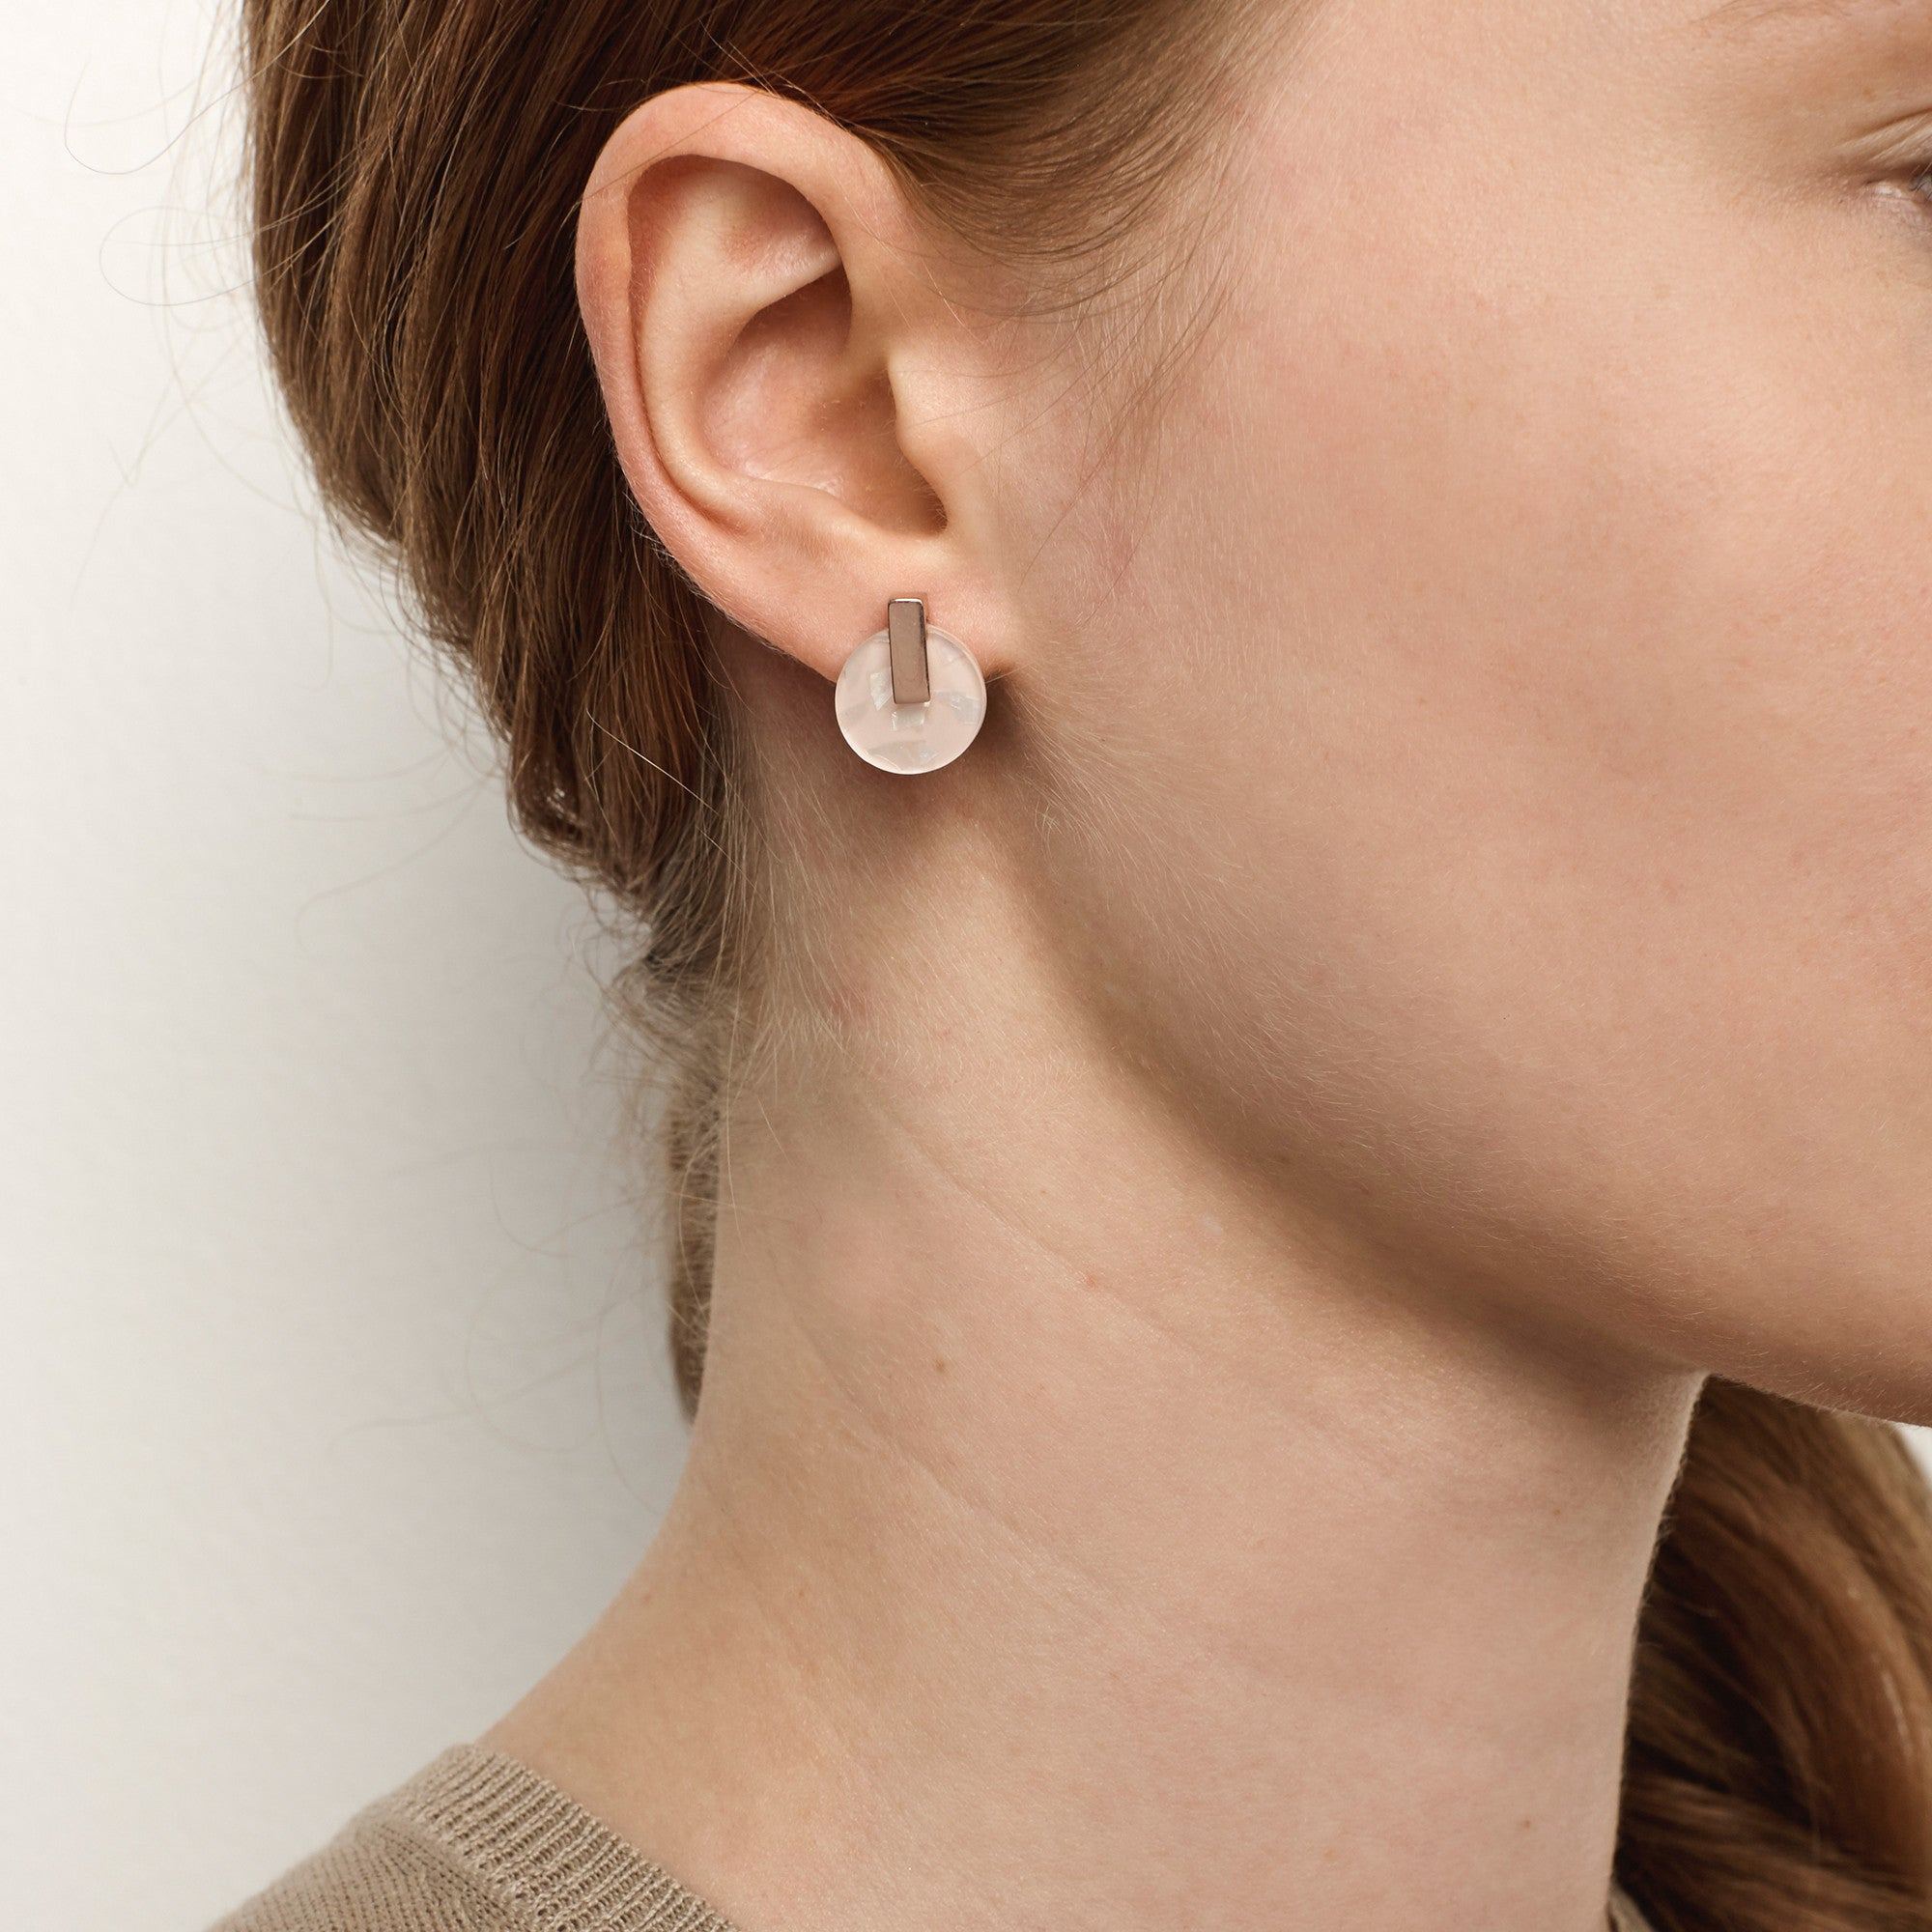 Resonance Stud Earrings - Musk